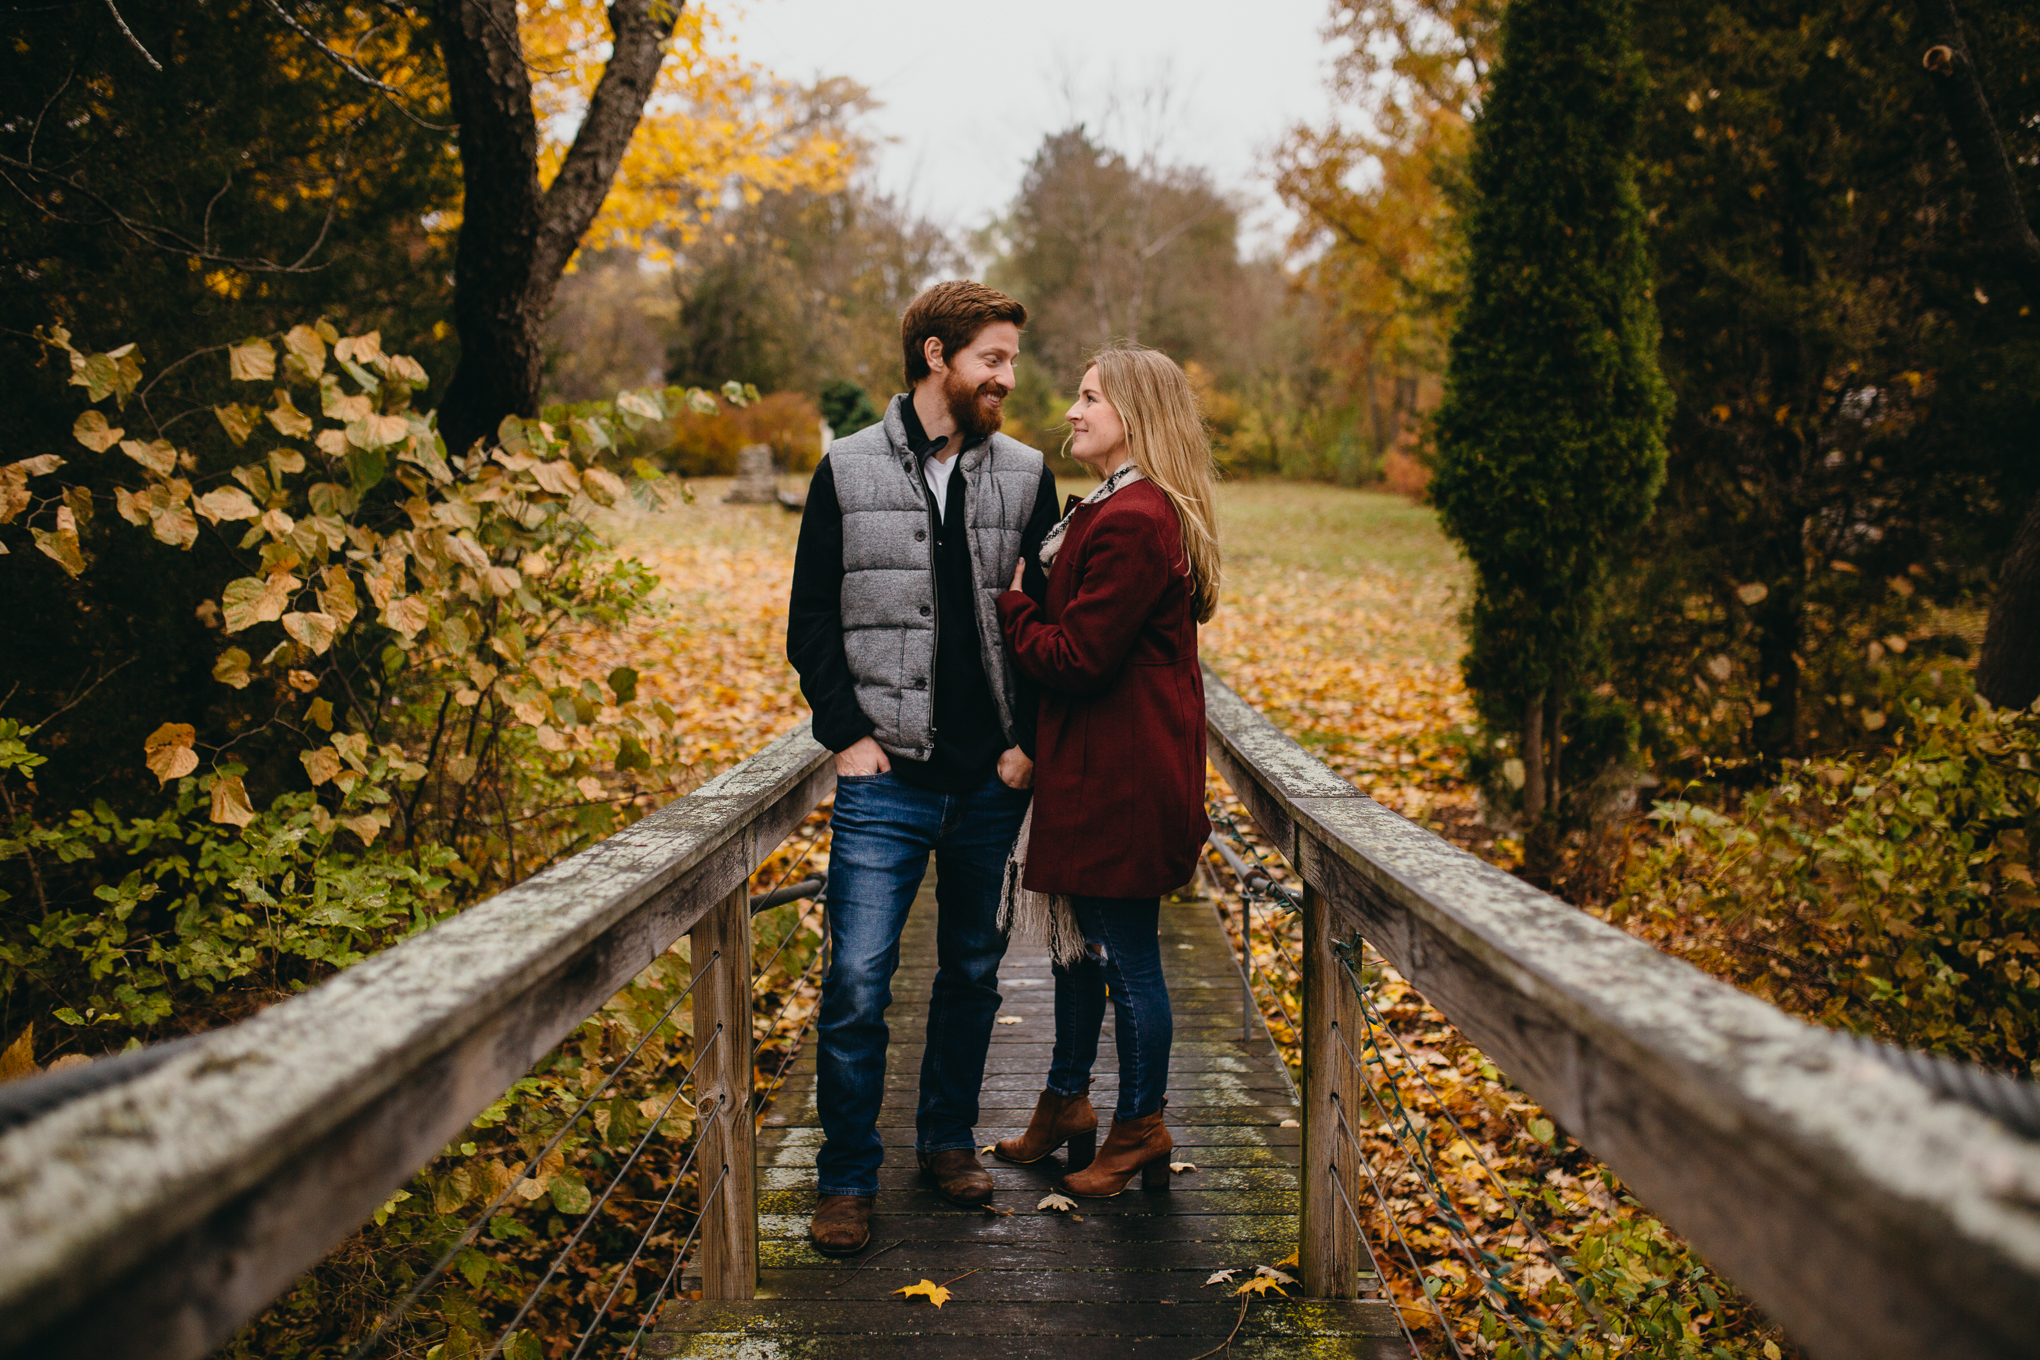 rowan+birch-engagement-chicago-fall-9.jpg